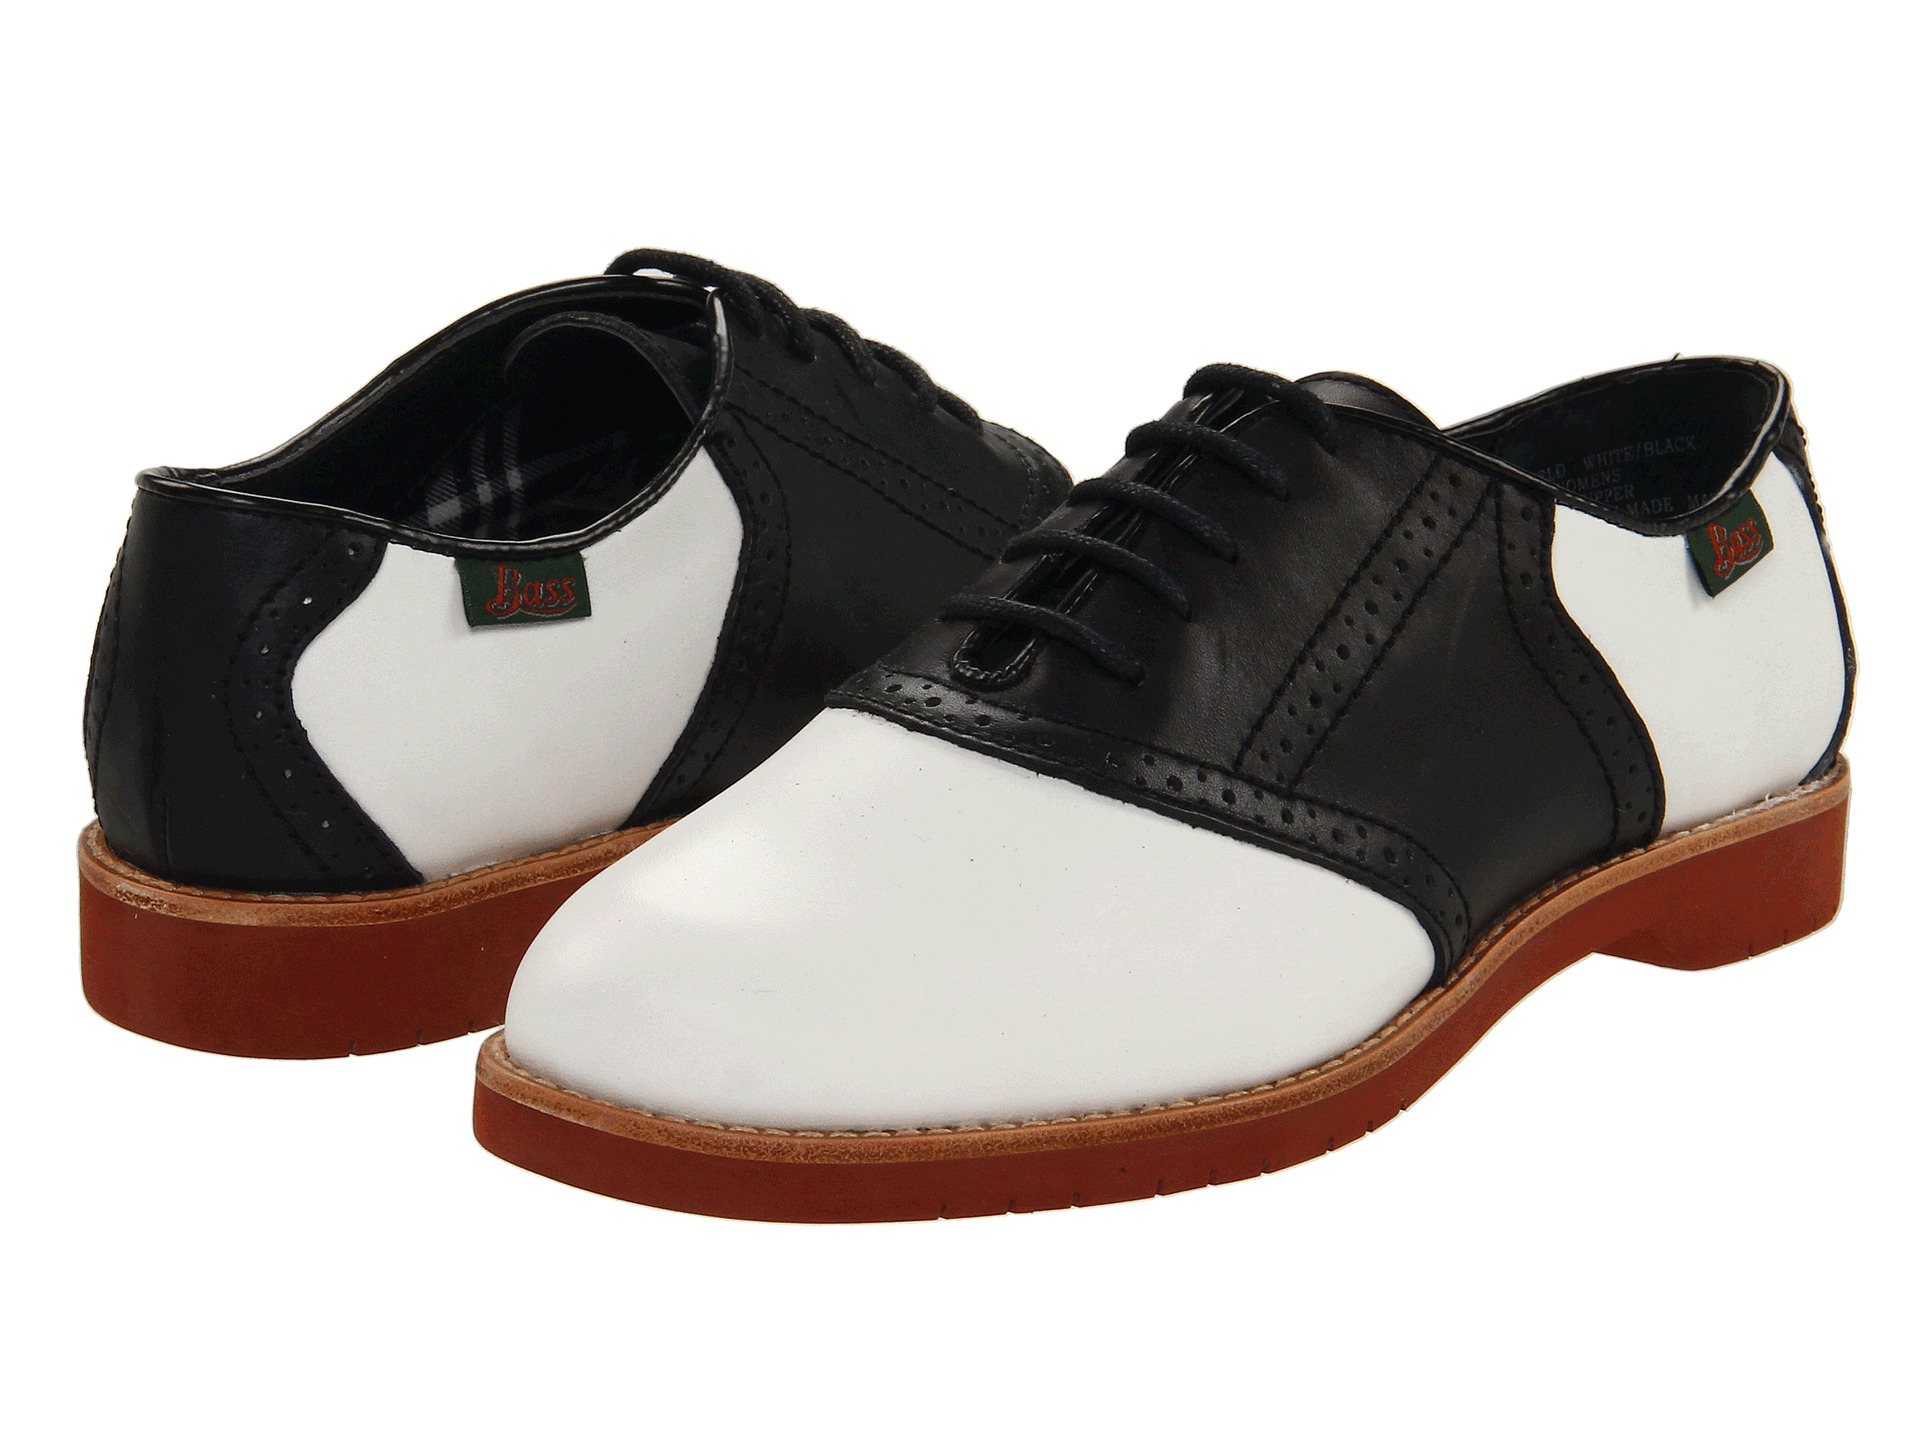 Zappos Saddle Shoes Mens